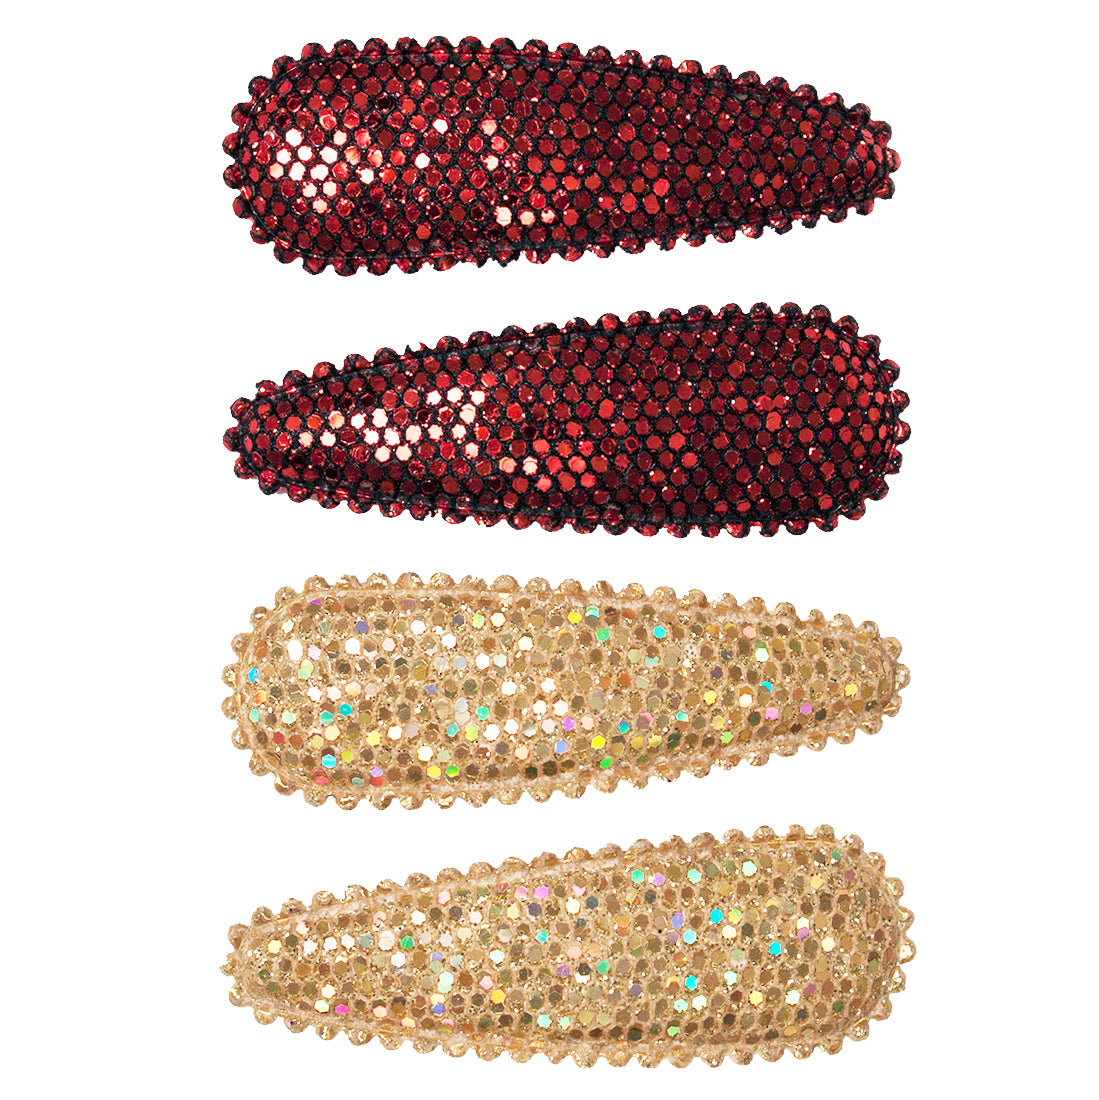 Mia® Snip Snaps® - hair barrettes in metallic material - maroon and gold colors - by Mia Kaminski